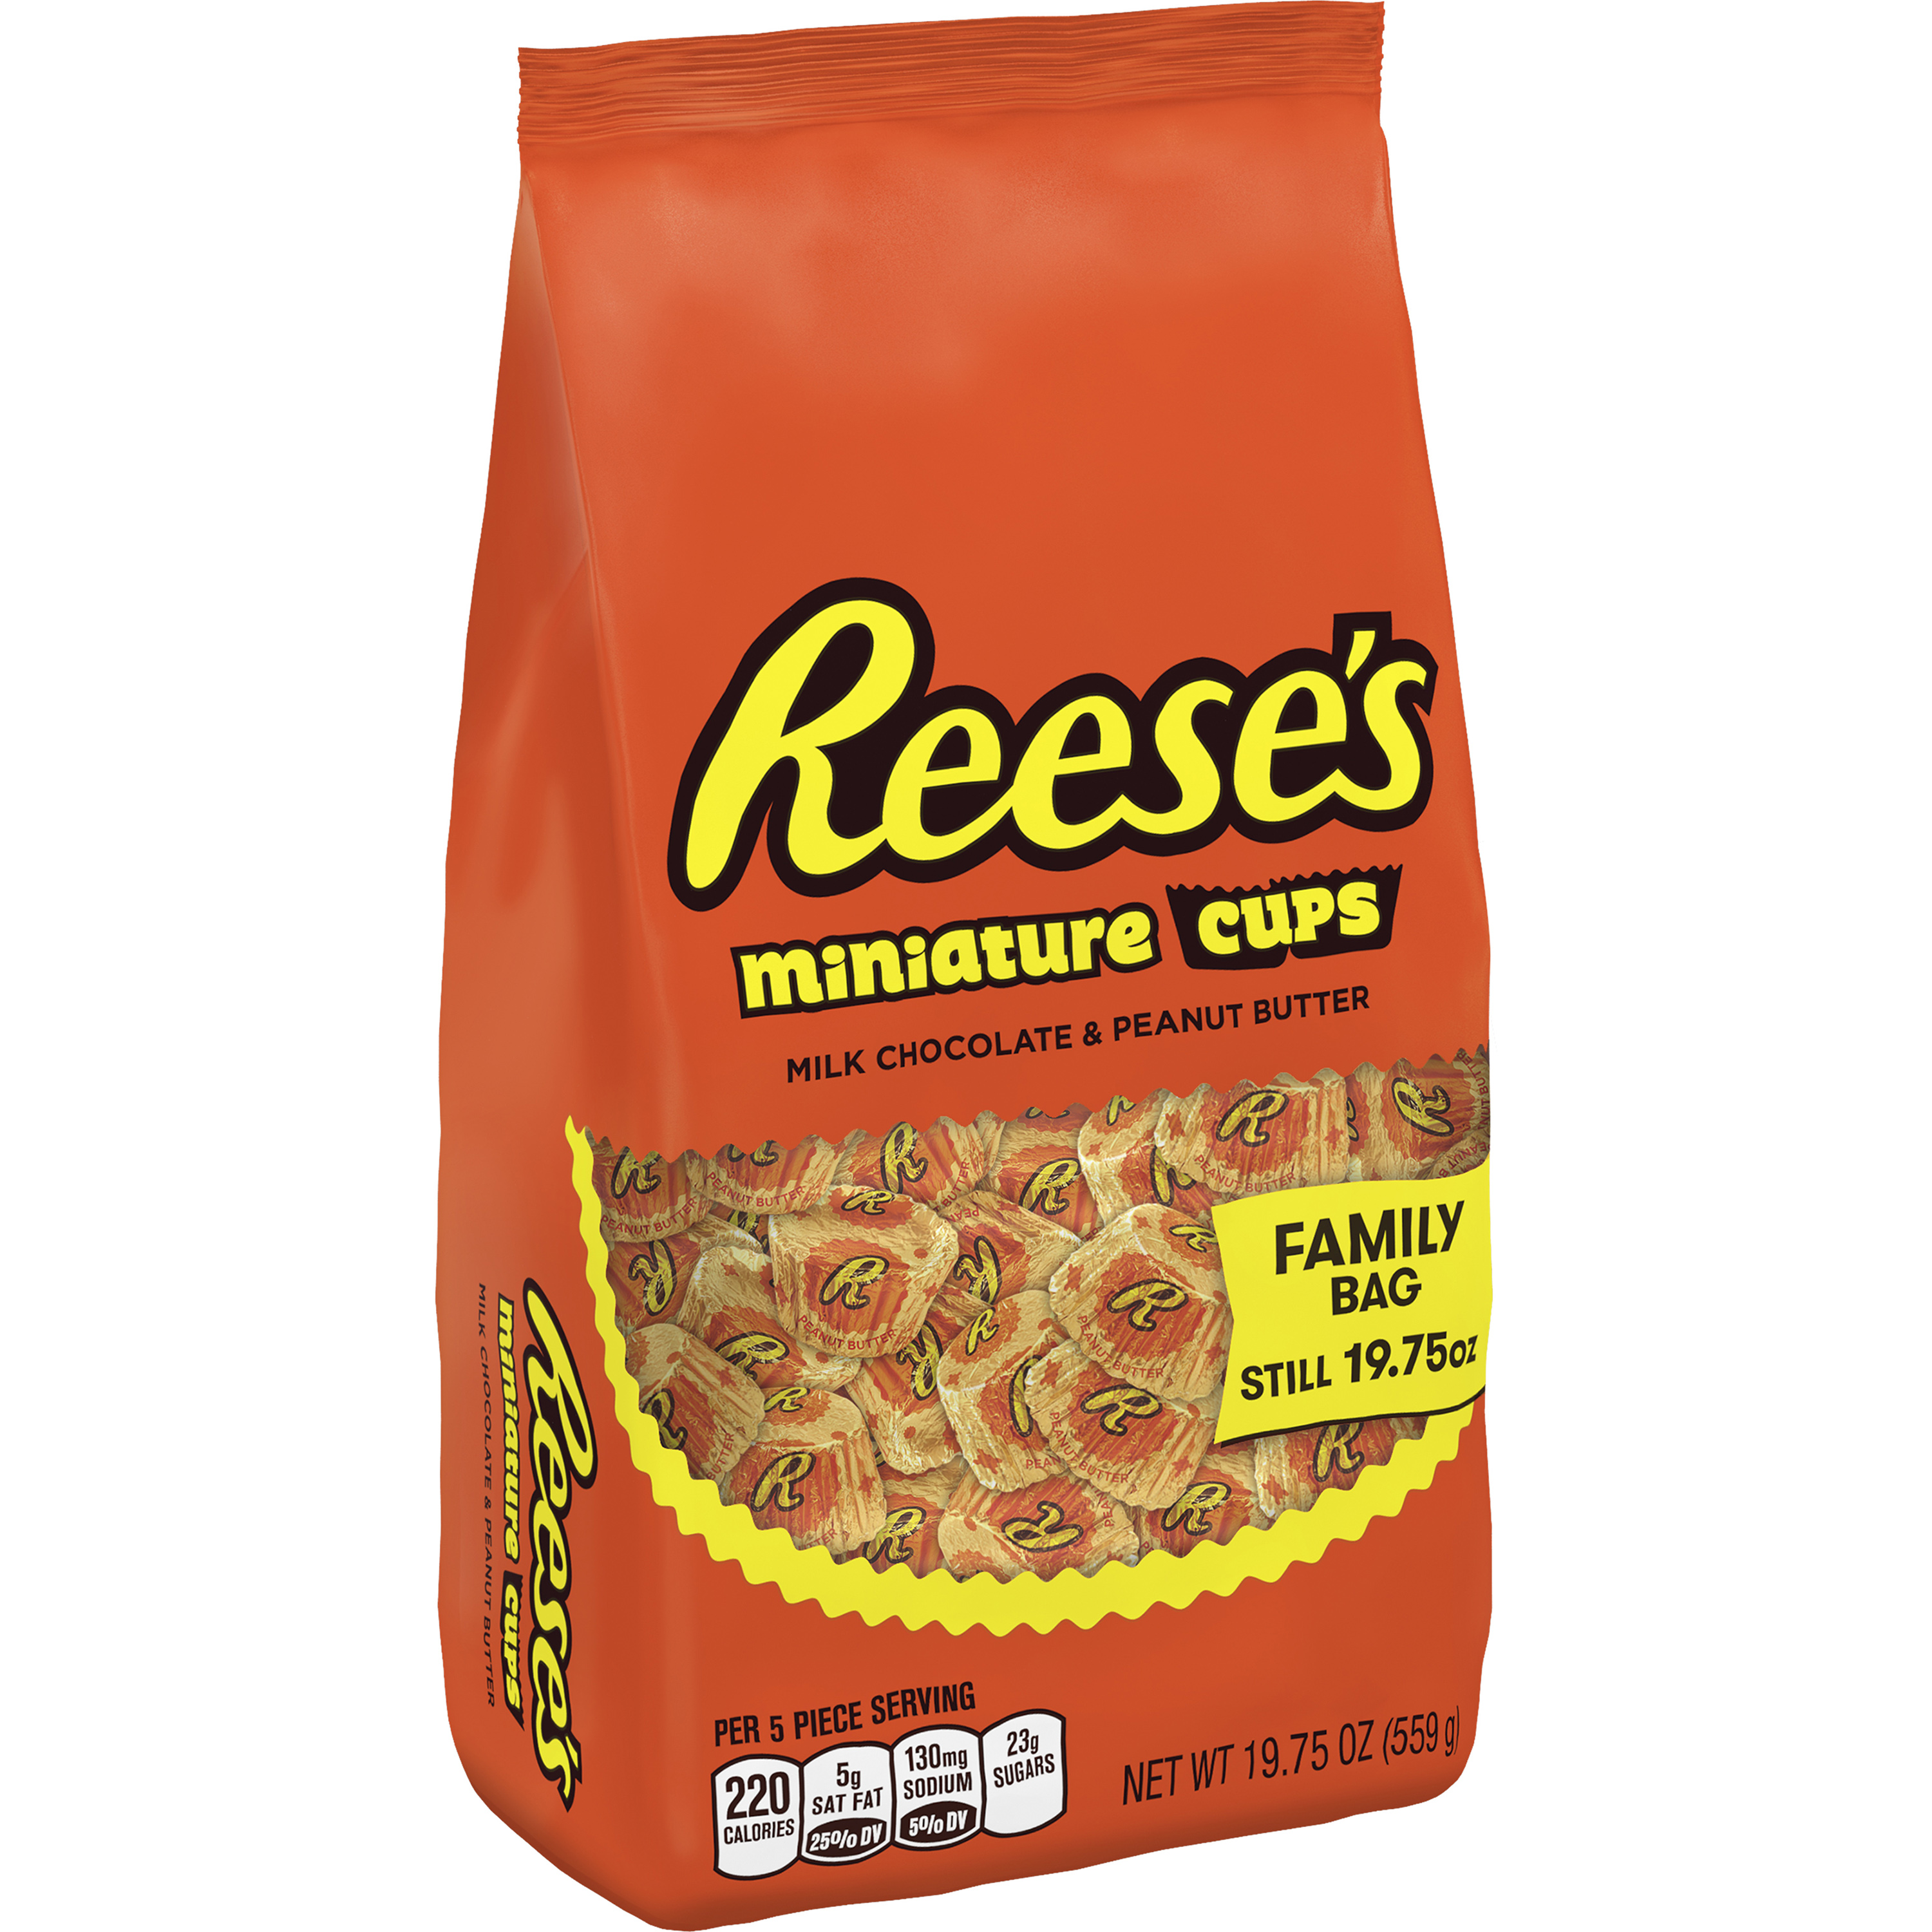 Reese's Miniature Candy Family Bag, 19.75 Oz.